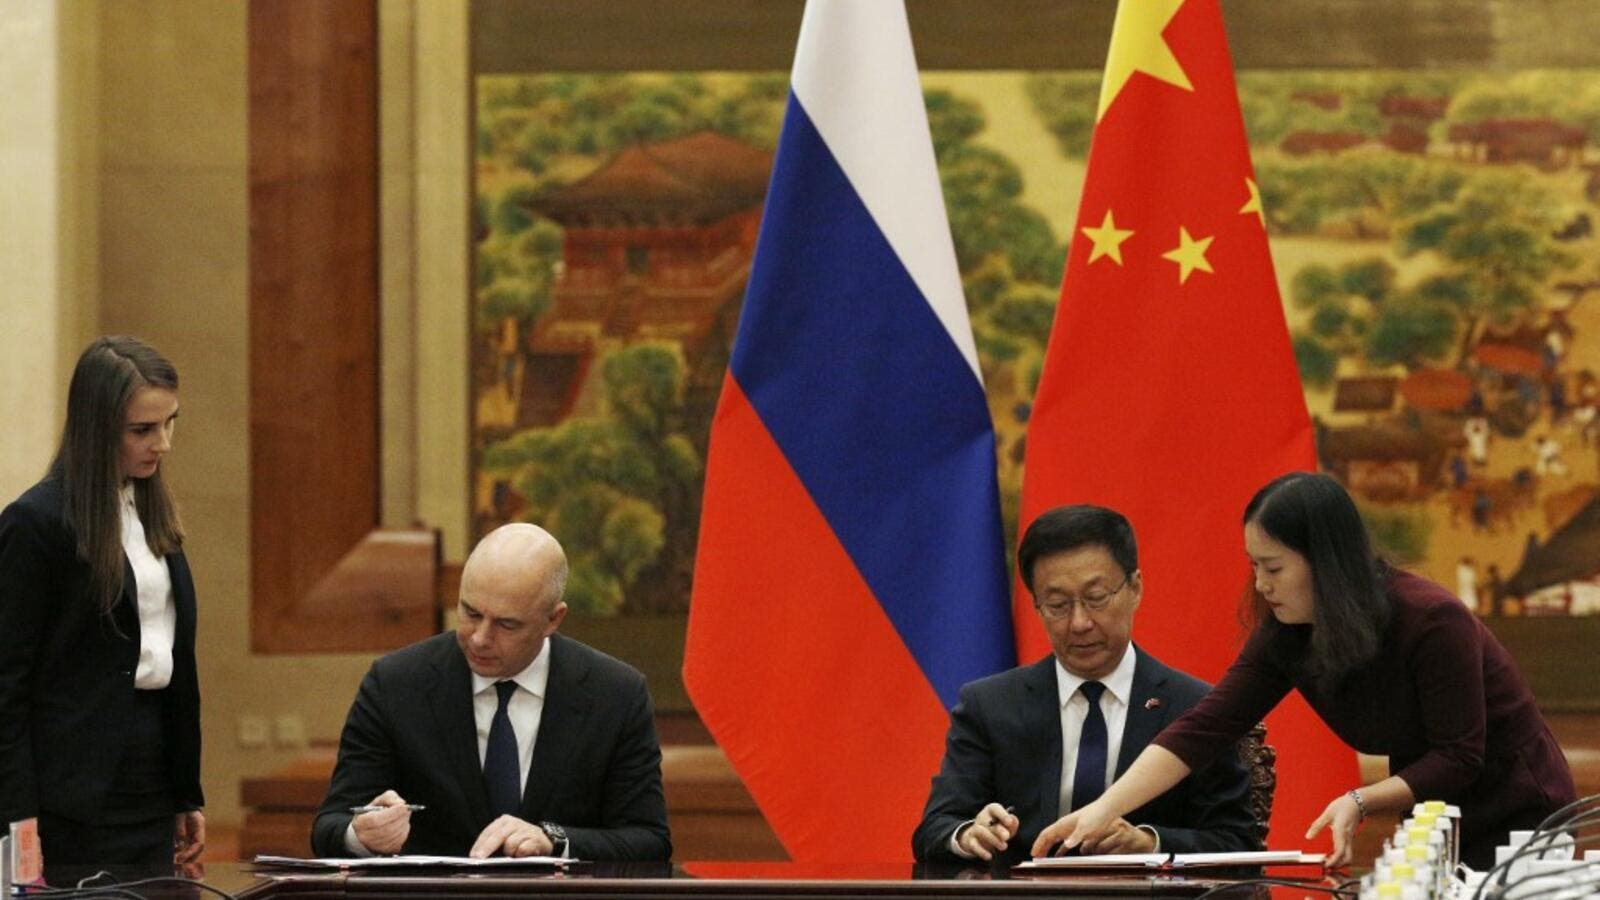 Russian First Deputy Prime Minister and Finance Minister Anton Siluanov attends a signing ceremony with Chinese Vice Premier Han Zheng at the Great Hall of the People in Beijing on November 26, 2019. FLORENCE LO / AFP